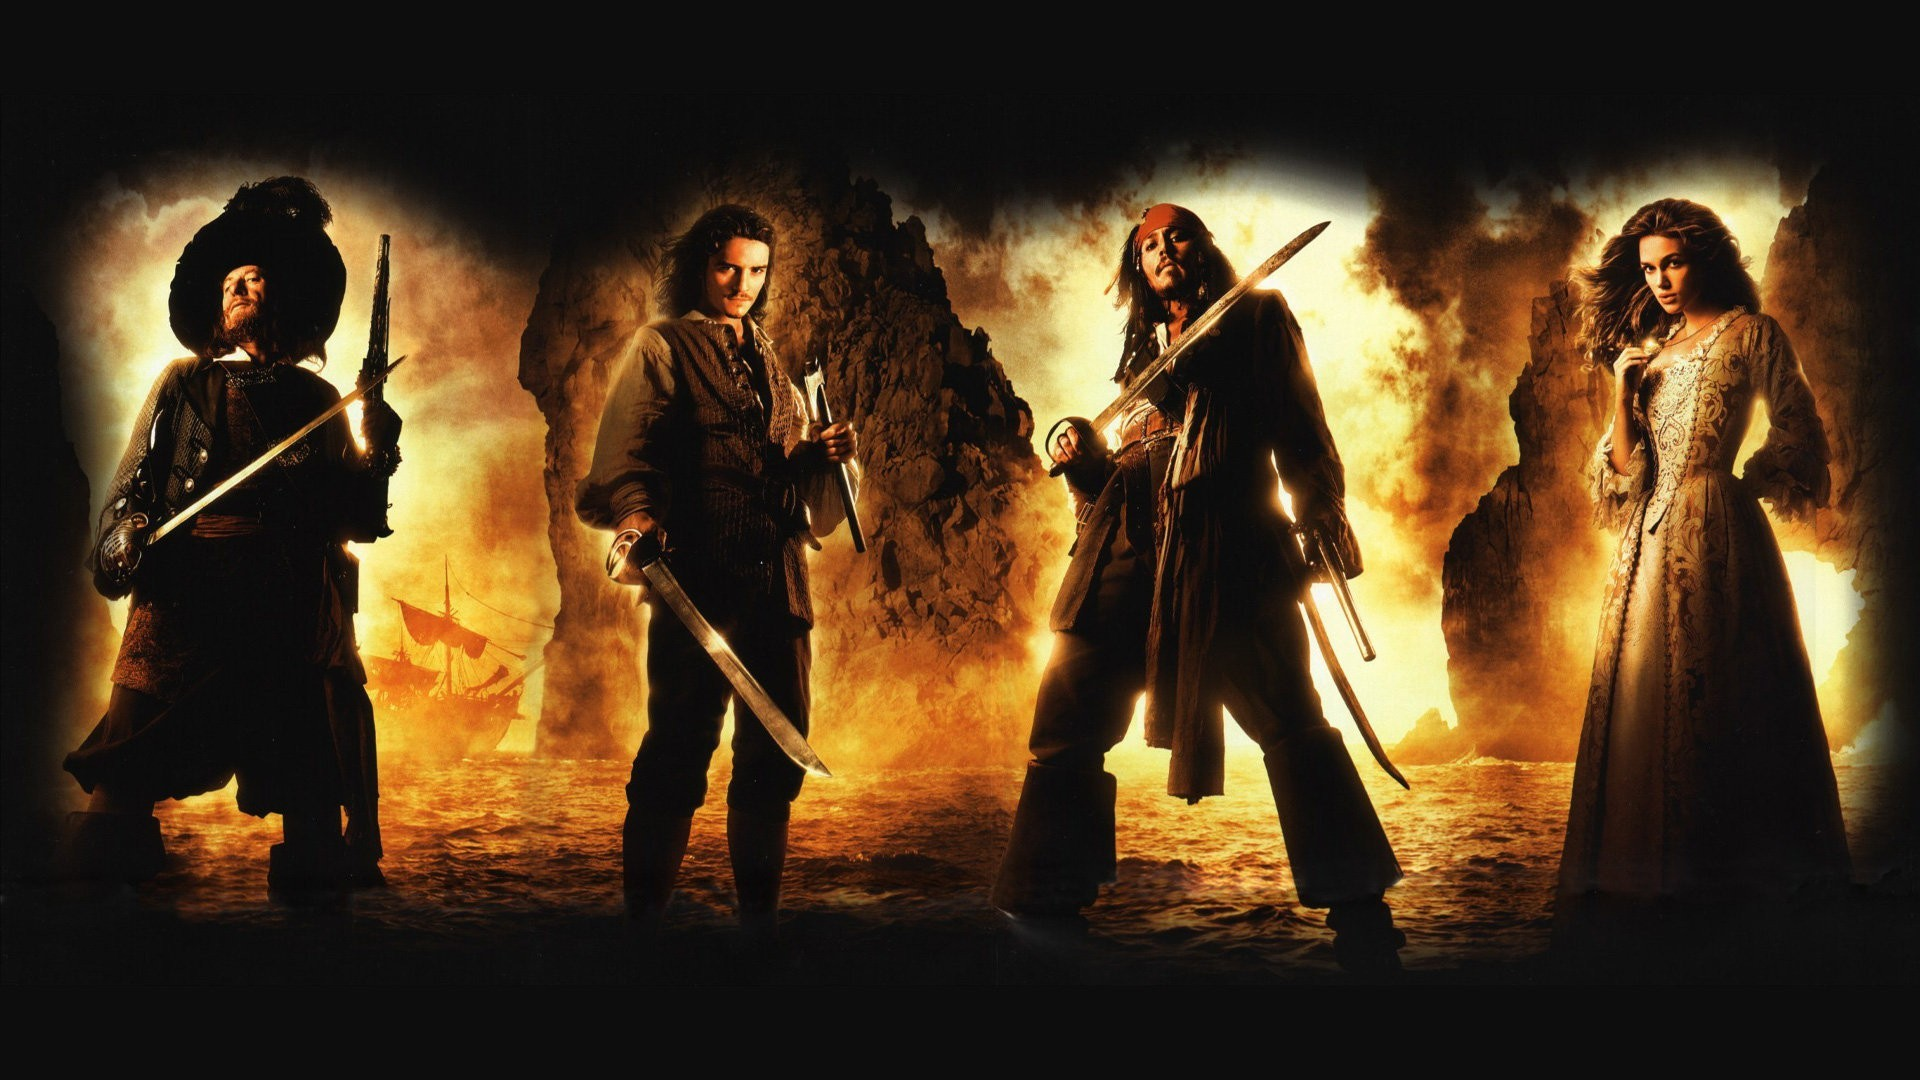 Pirates Of The Caribbean high definition wallpapers